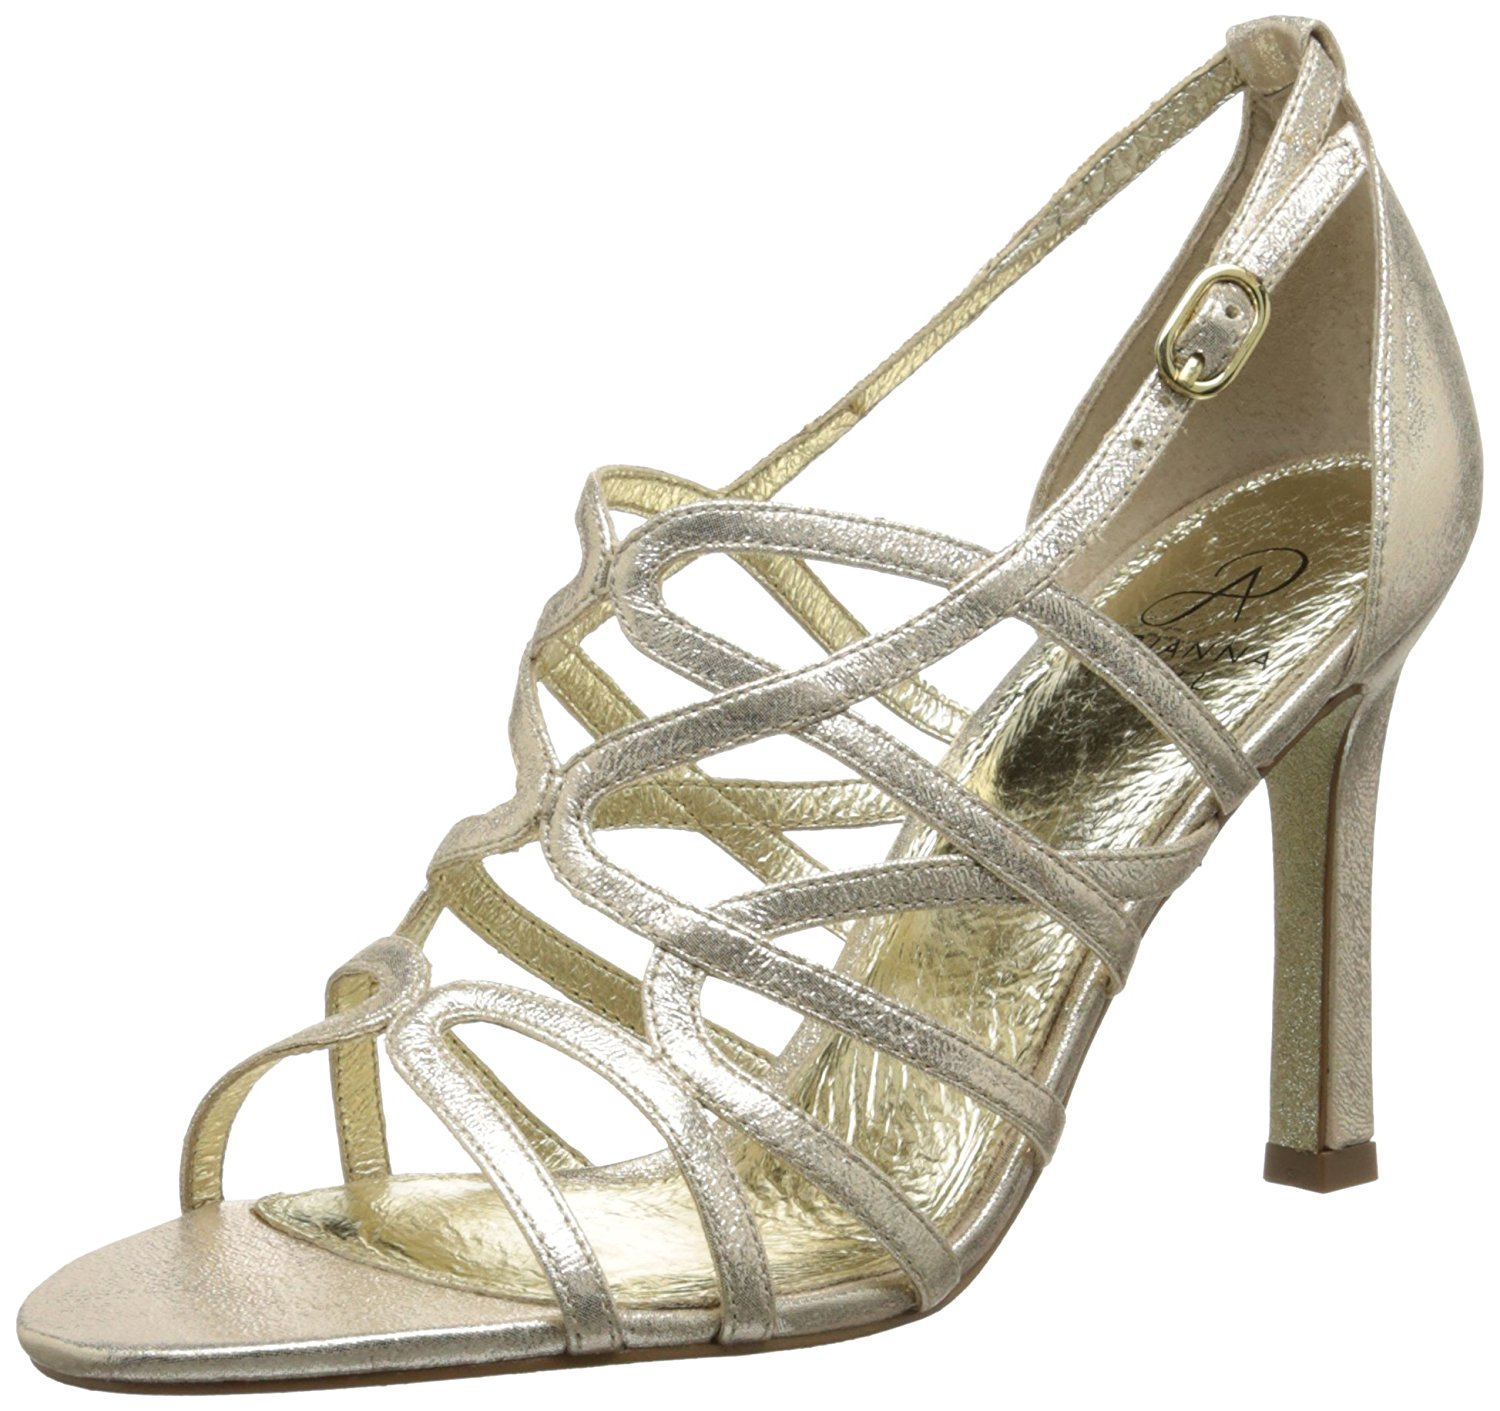 Adrianna Papell Women's Elda Dress Pump Gold Size 10.0